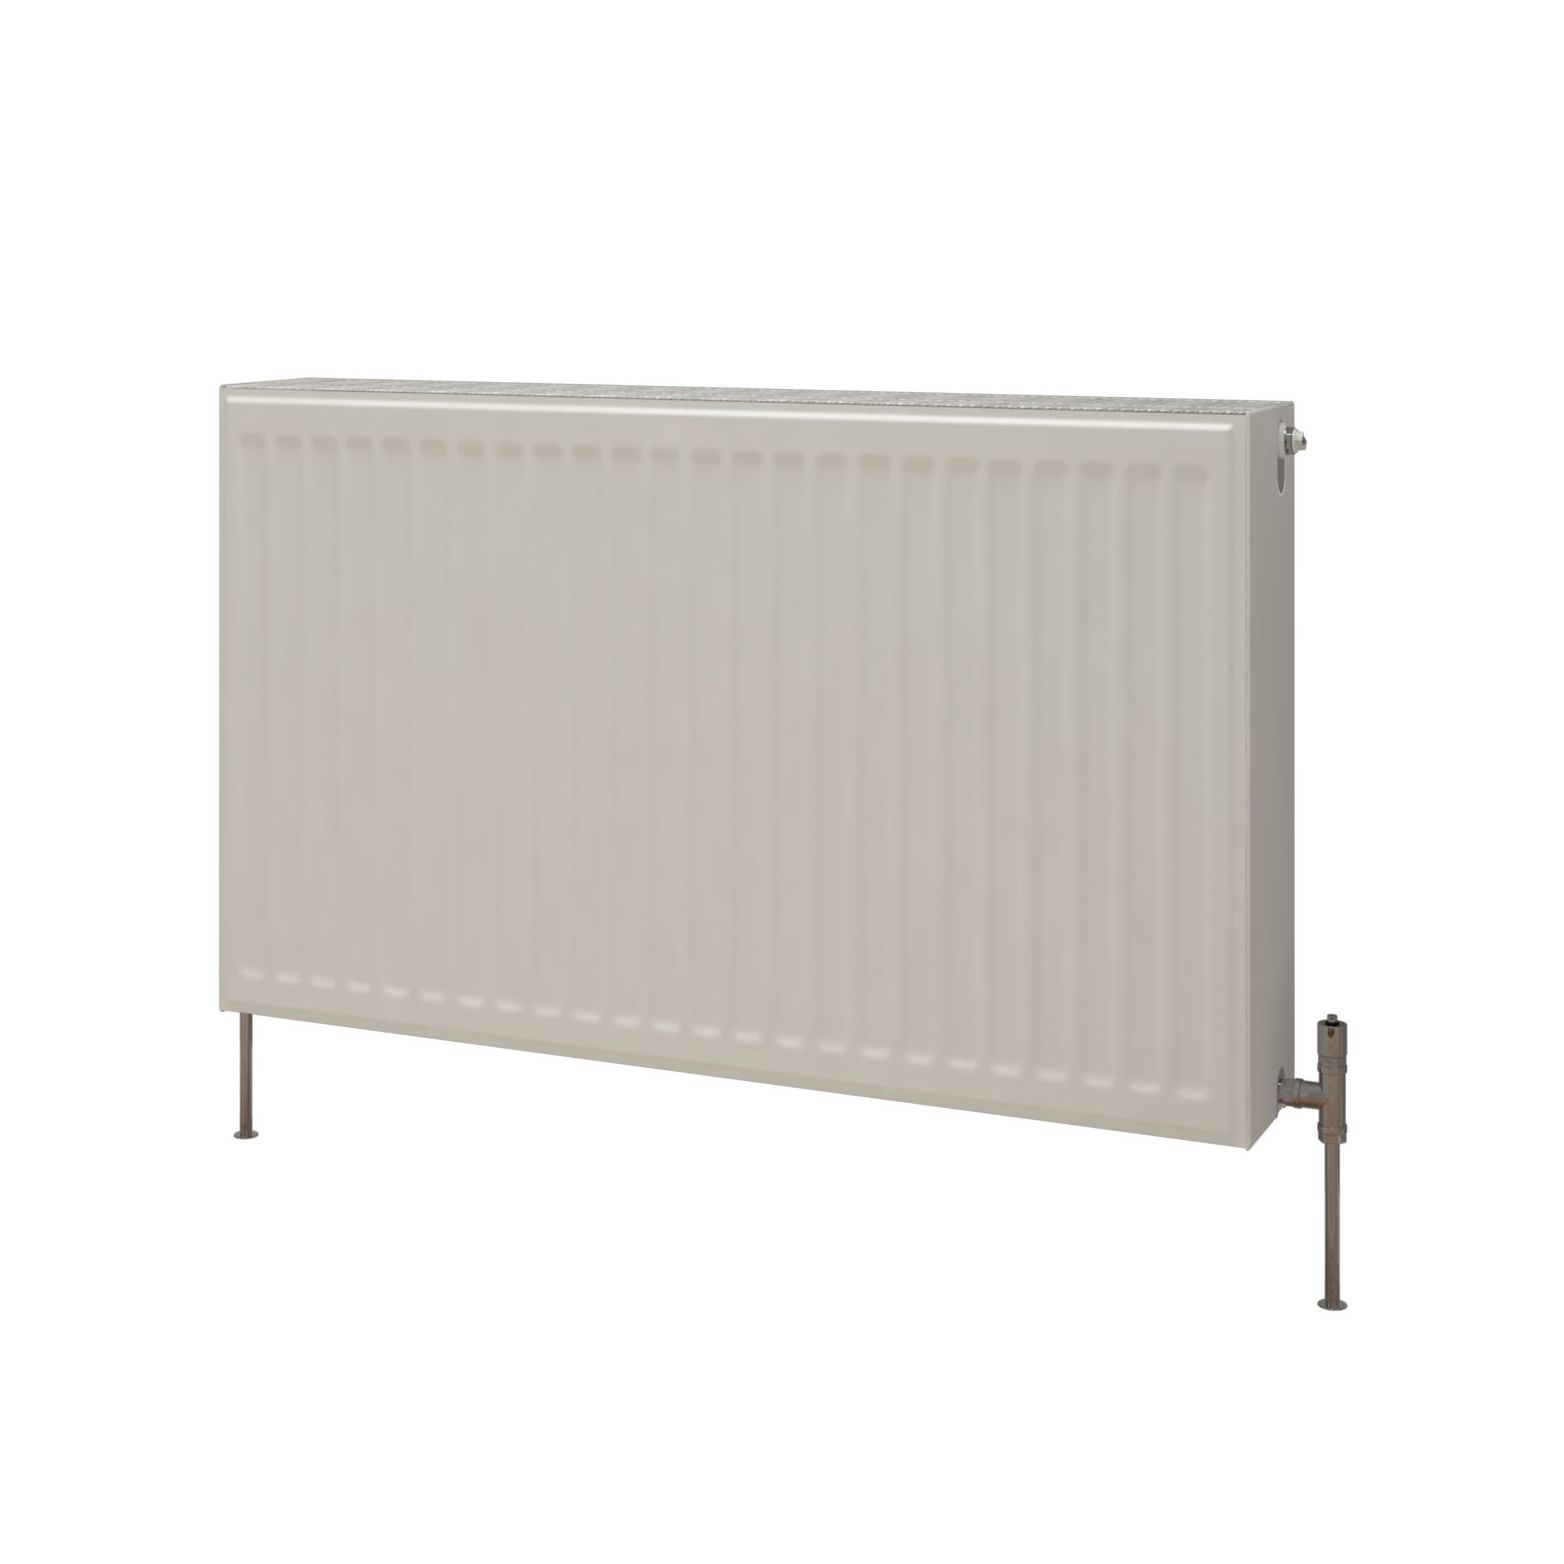 Kudox Premium Double Radiator Gloss (H)700 mm (W)900